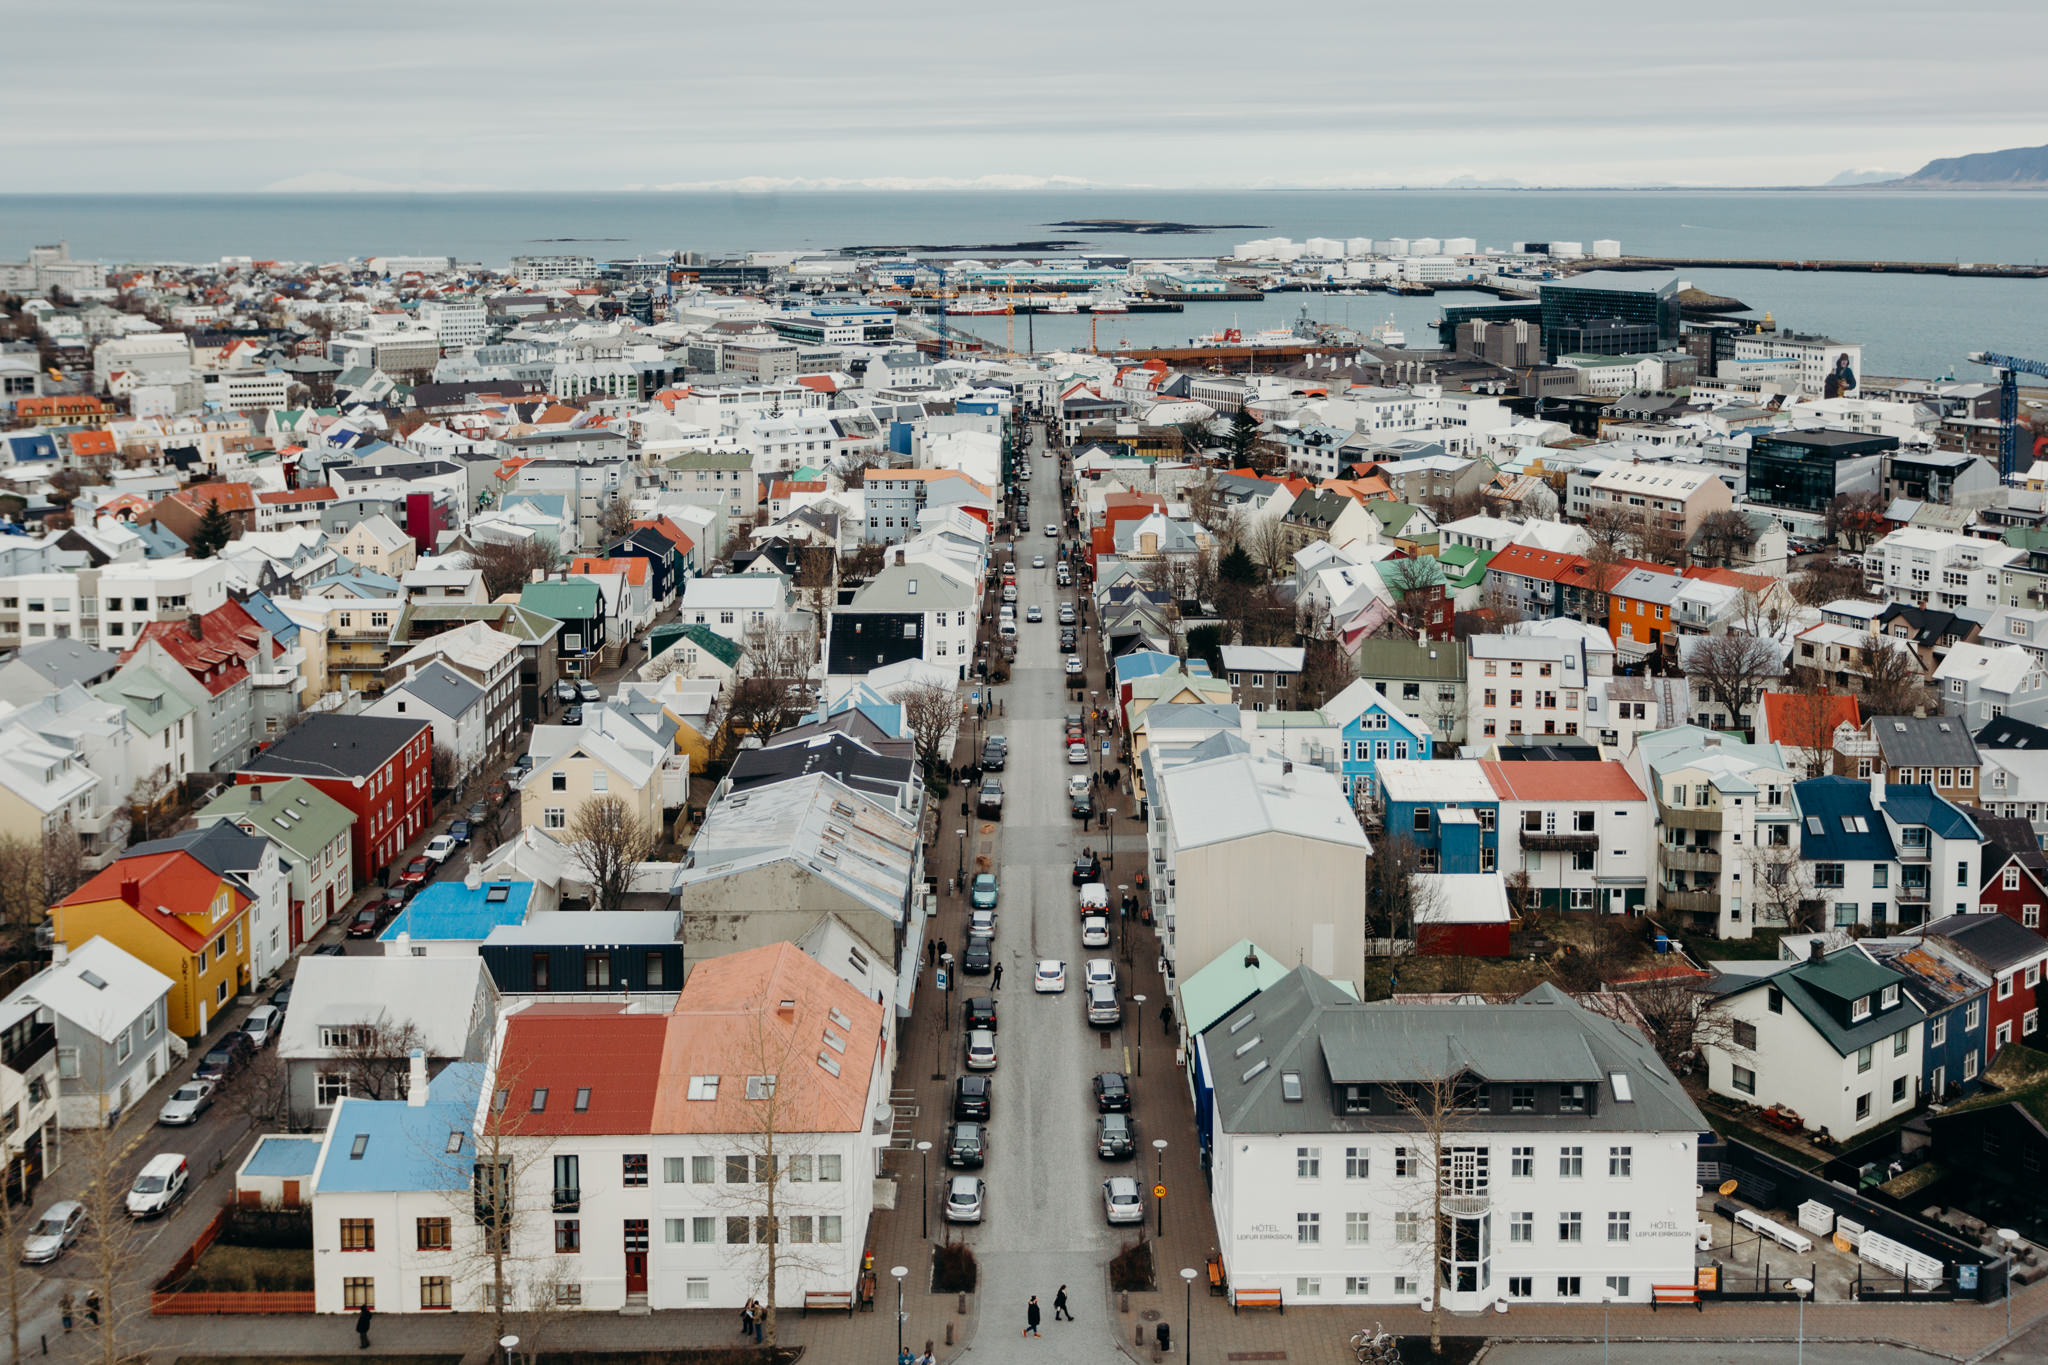 Classic view of colourful Reykjavík buildings from Hallgrímskirkja church